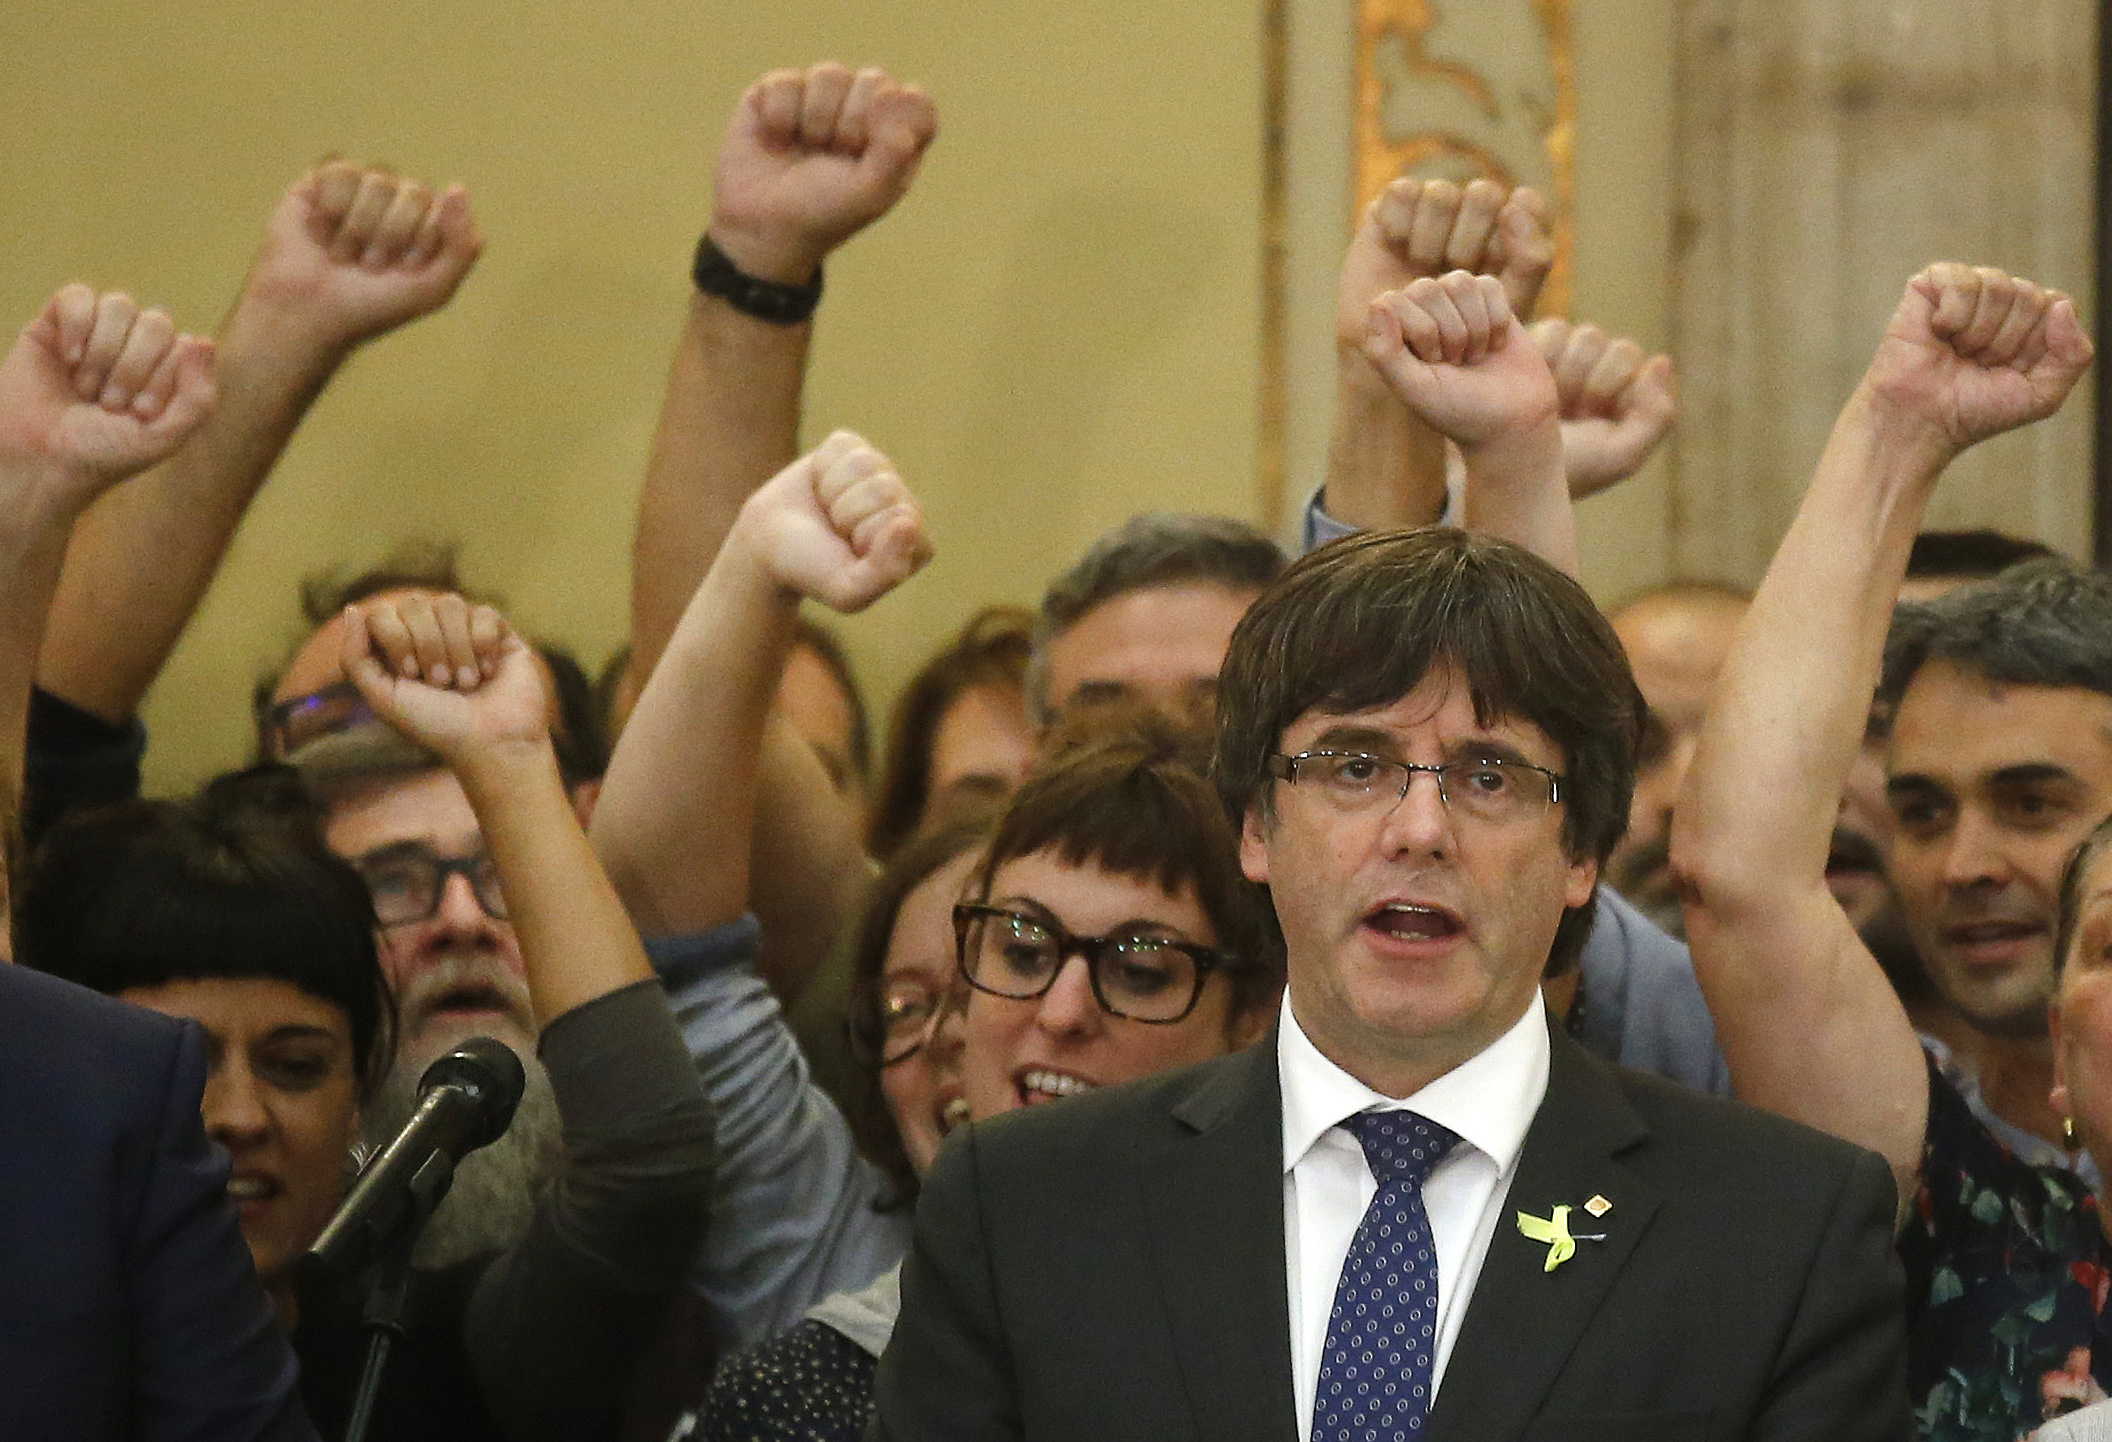 Catalan President Carles Puigdemont sings the Catalan anthem inside the parliament after a vote on independence in Barcelona, Spain, Oct. 27, 2017.